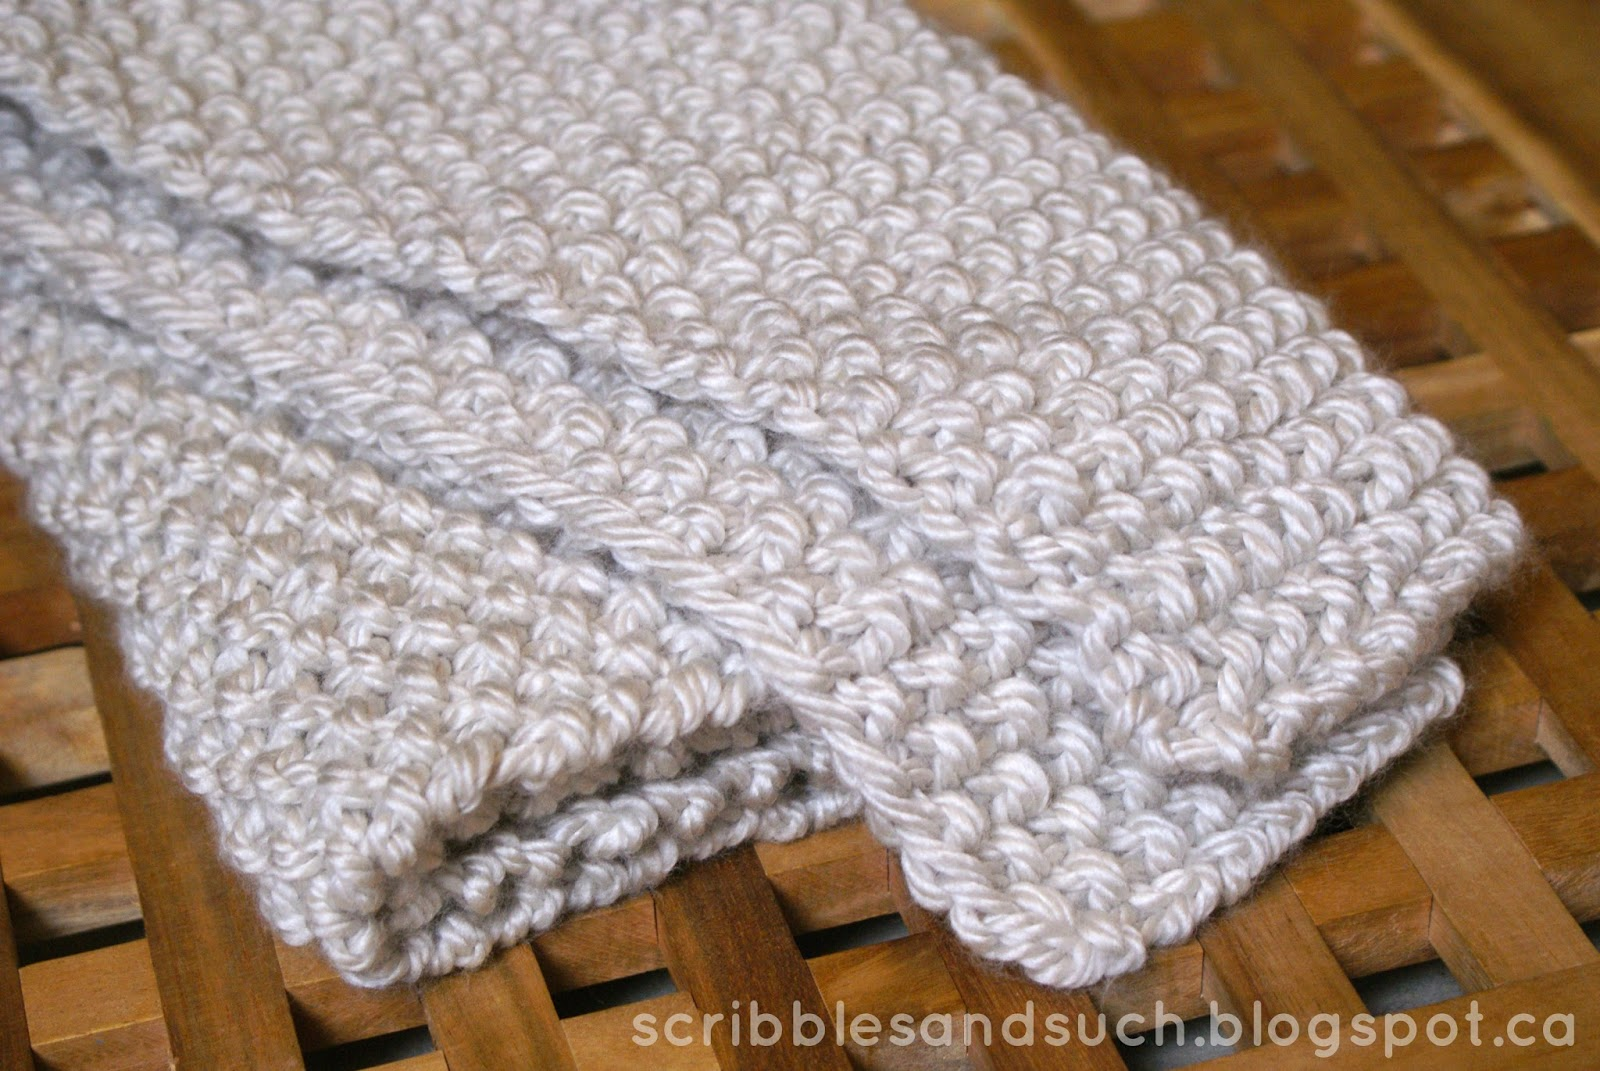 Knitting Pattern For Chunky Baby Blanket : scribbles & such: Chunky Knitted Baby Blanket